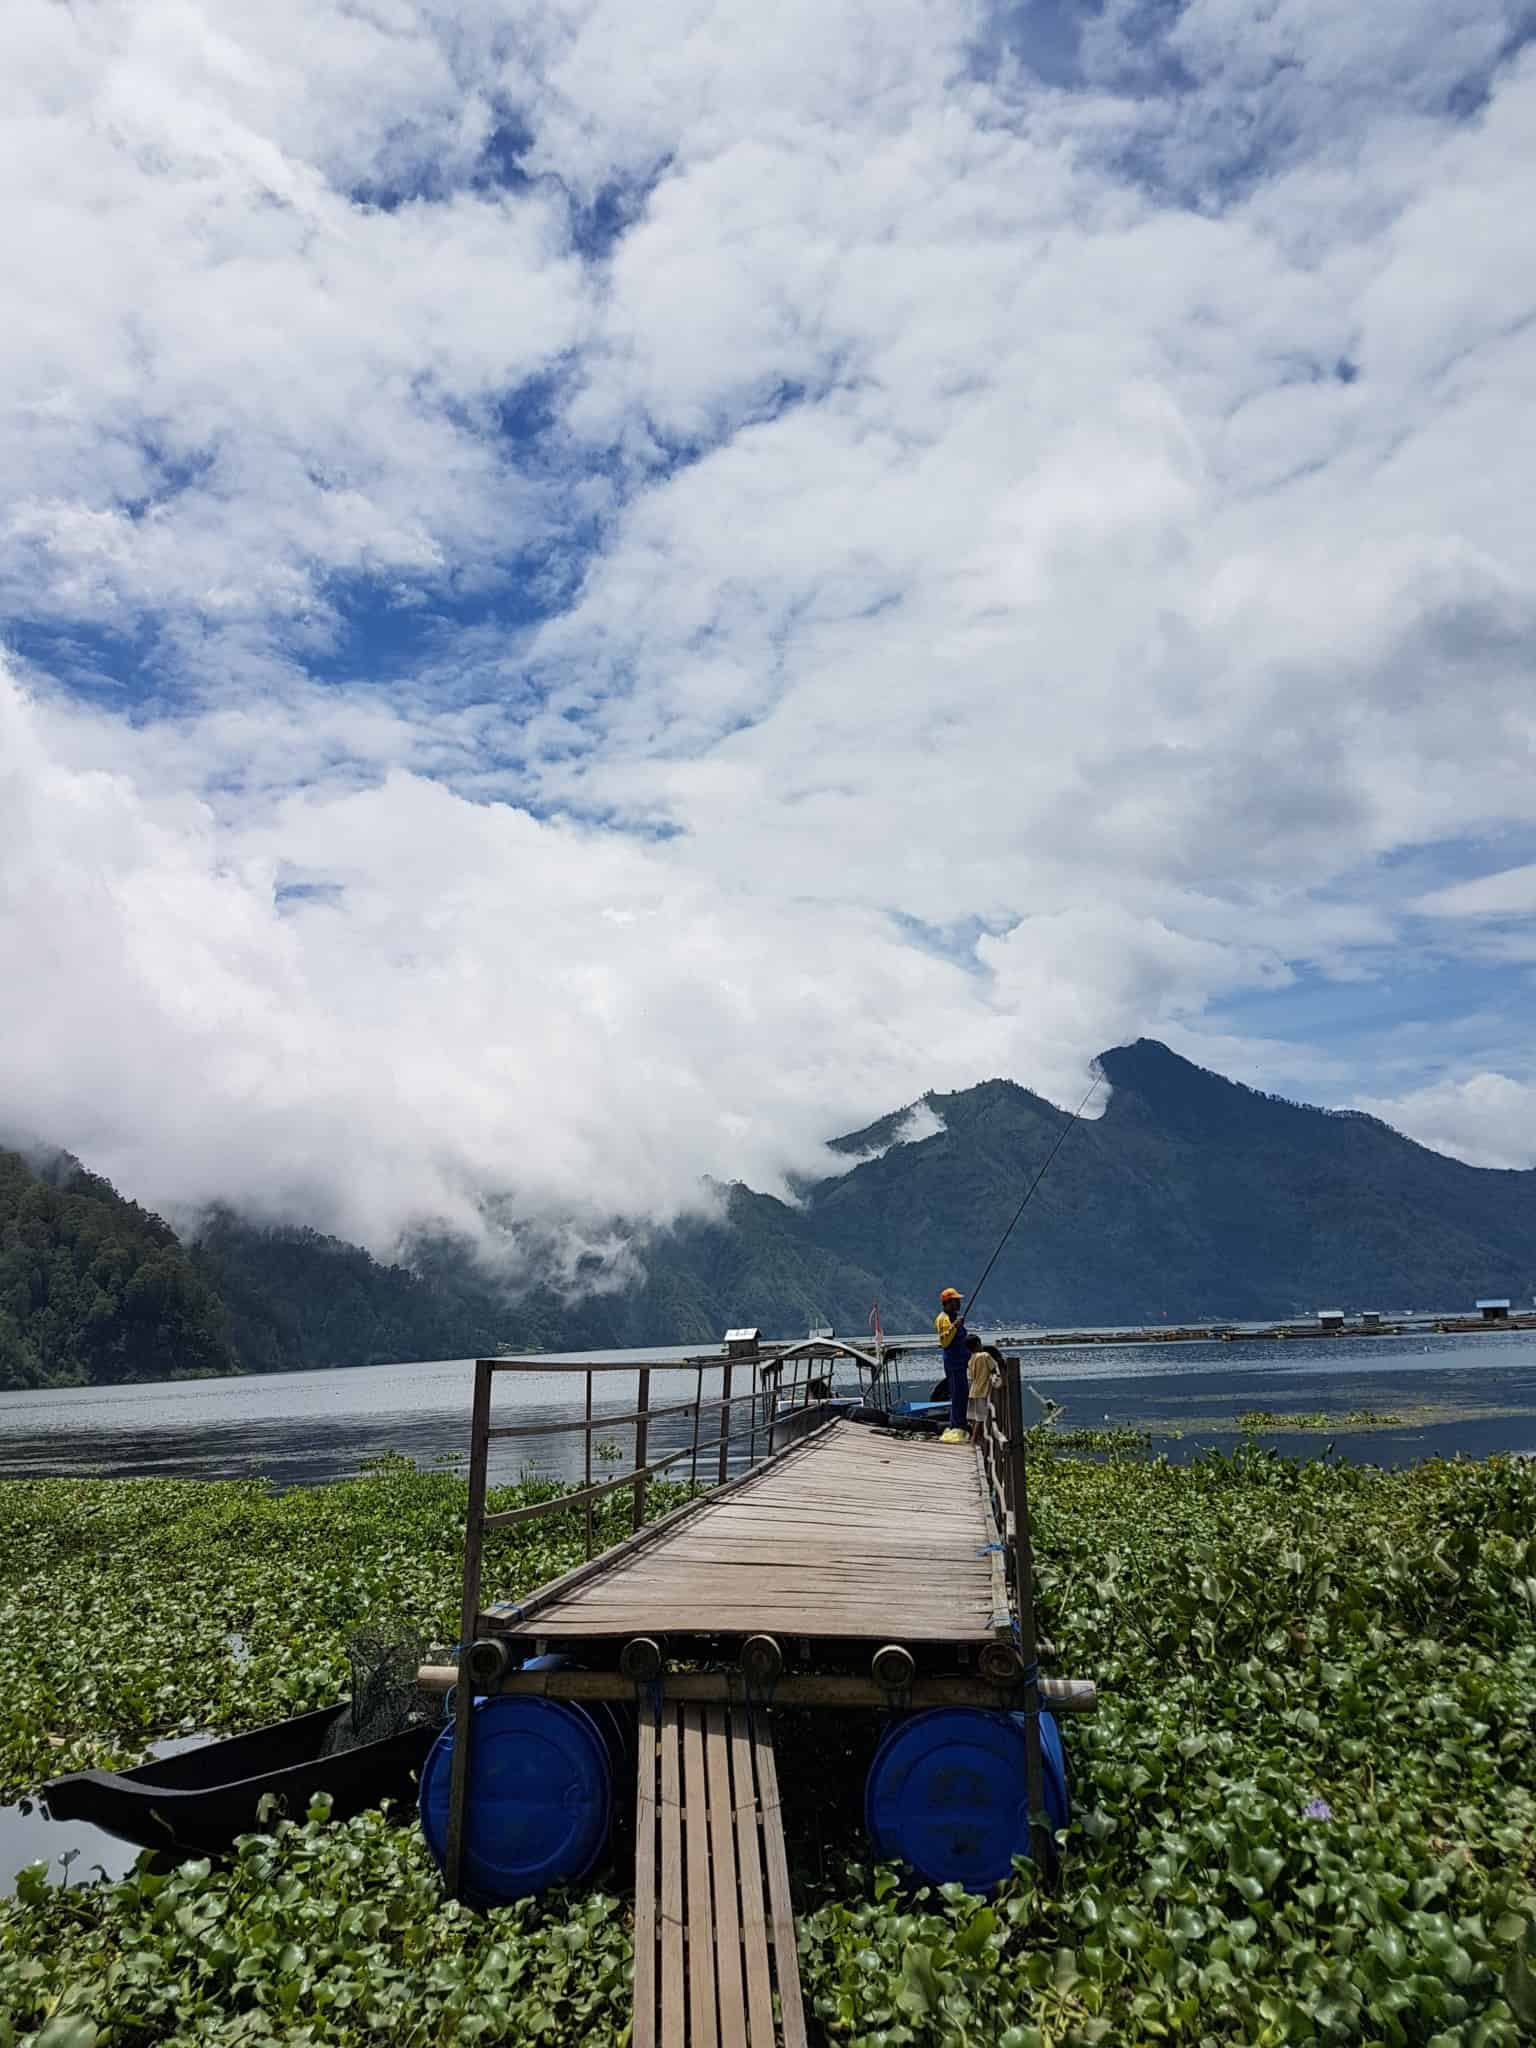 Bali, roadtrip en scooter direction le lac Danau Batur 💧 8